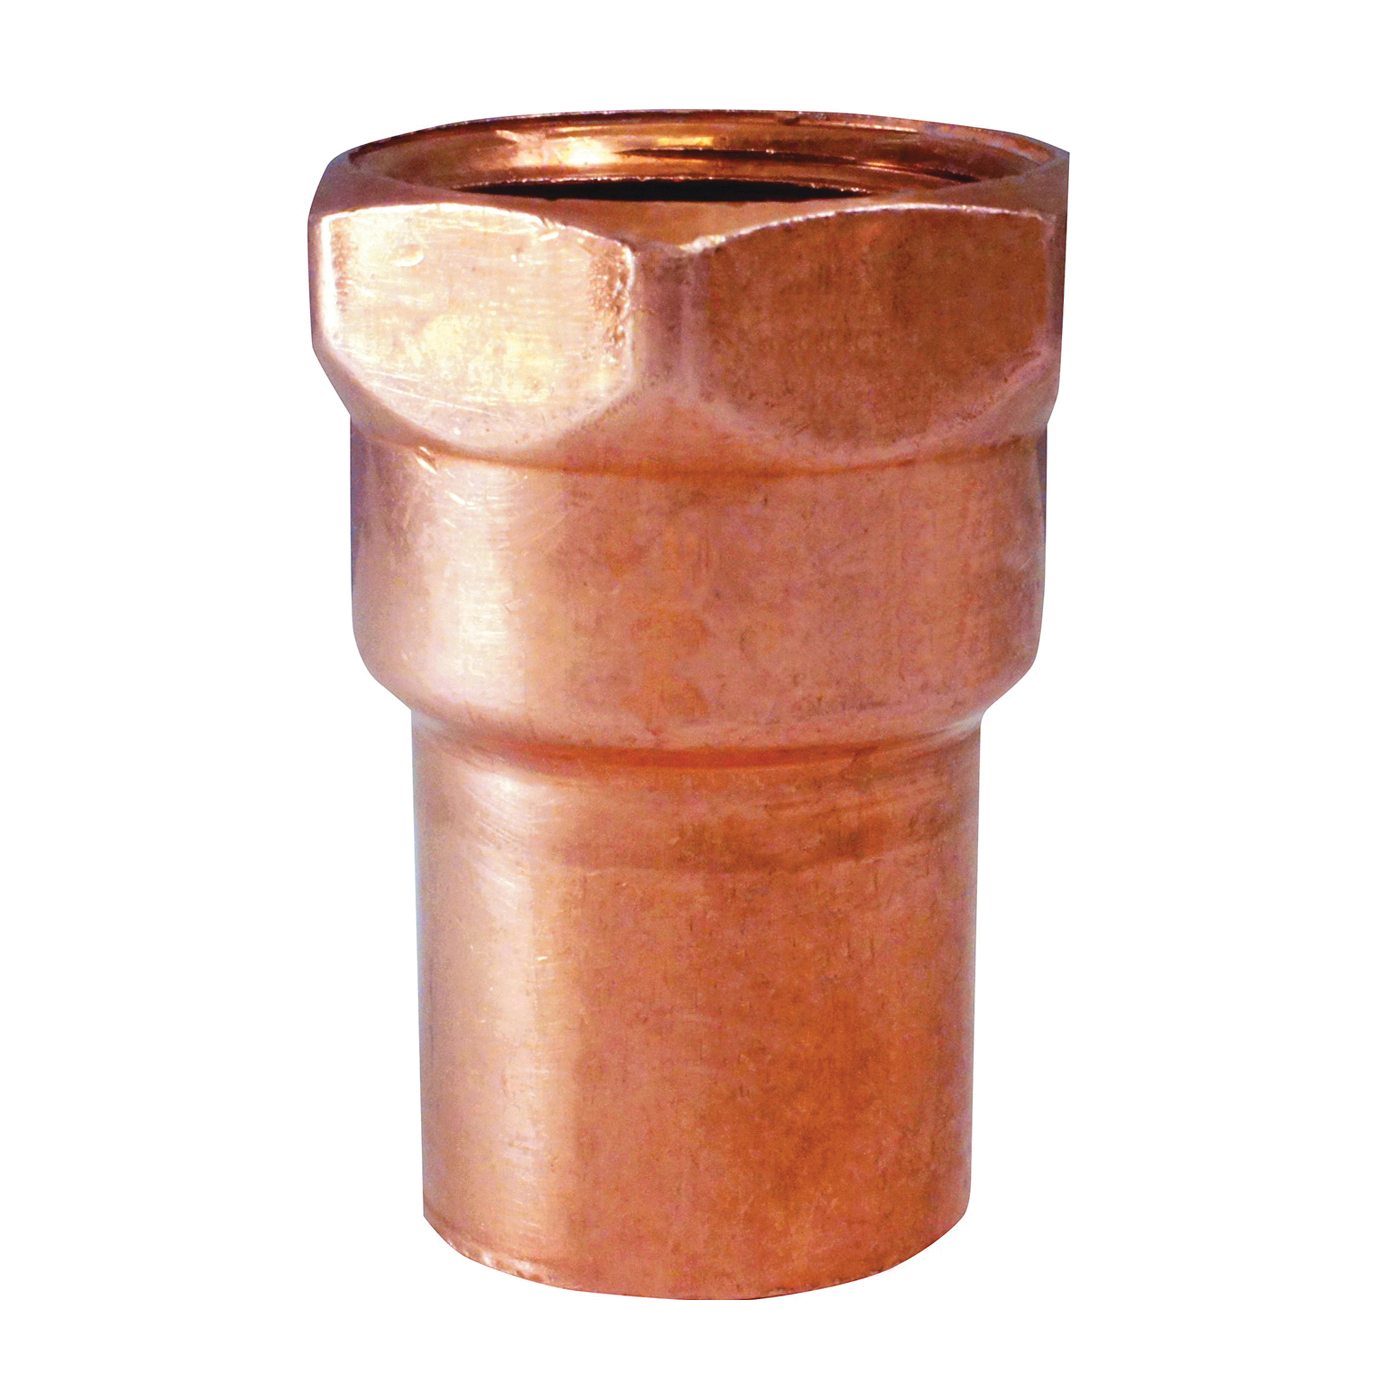 Picture of EPC 103 Series 30160 Pipe Adapter, 1 in, Sweat x FNPT, Copper